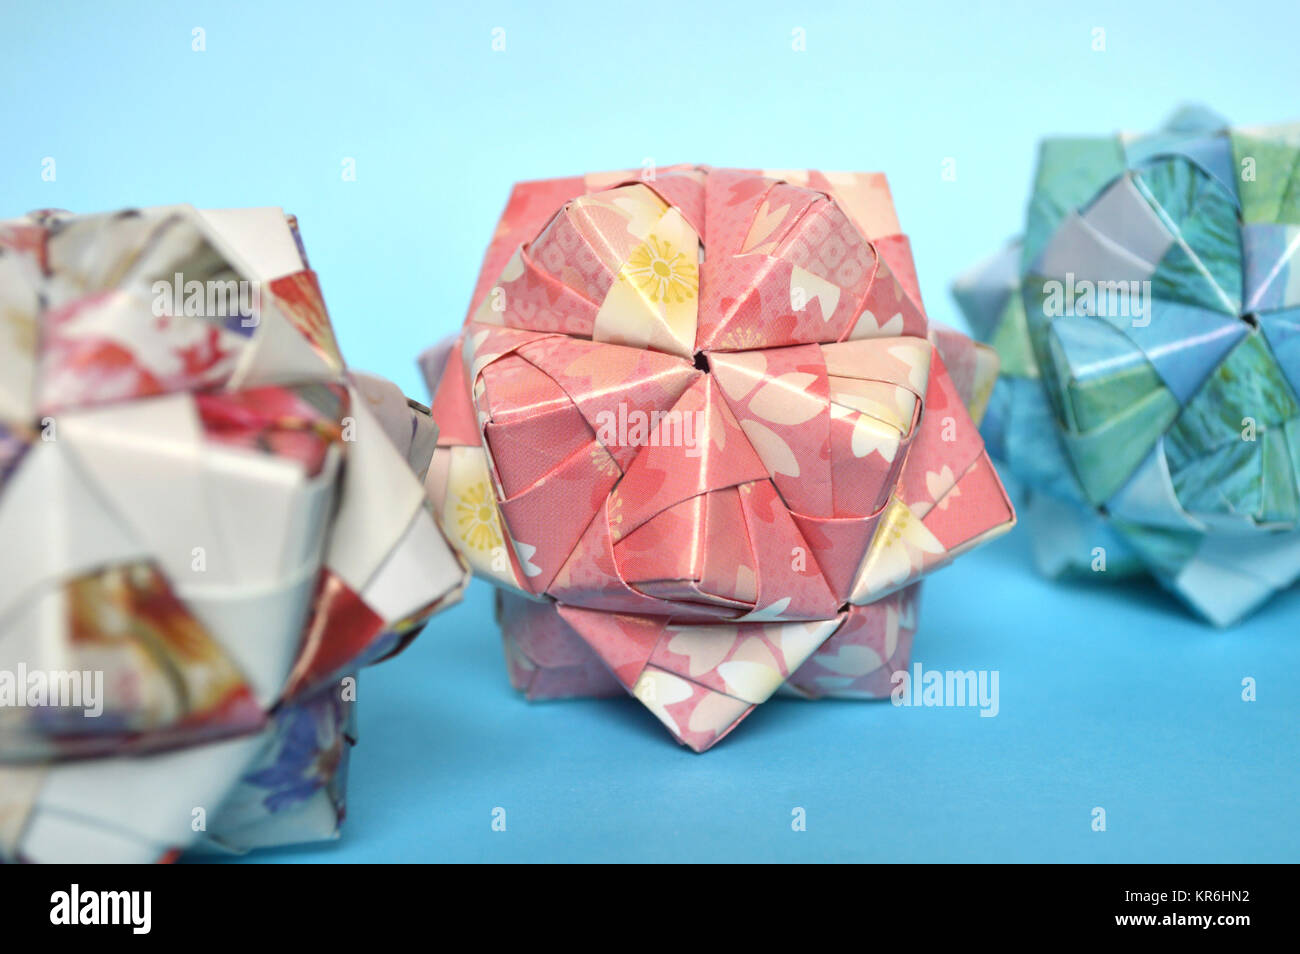 Yellow Star Origami Figurine Stock Photo - Image of creativity ... | 954x1300